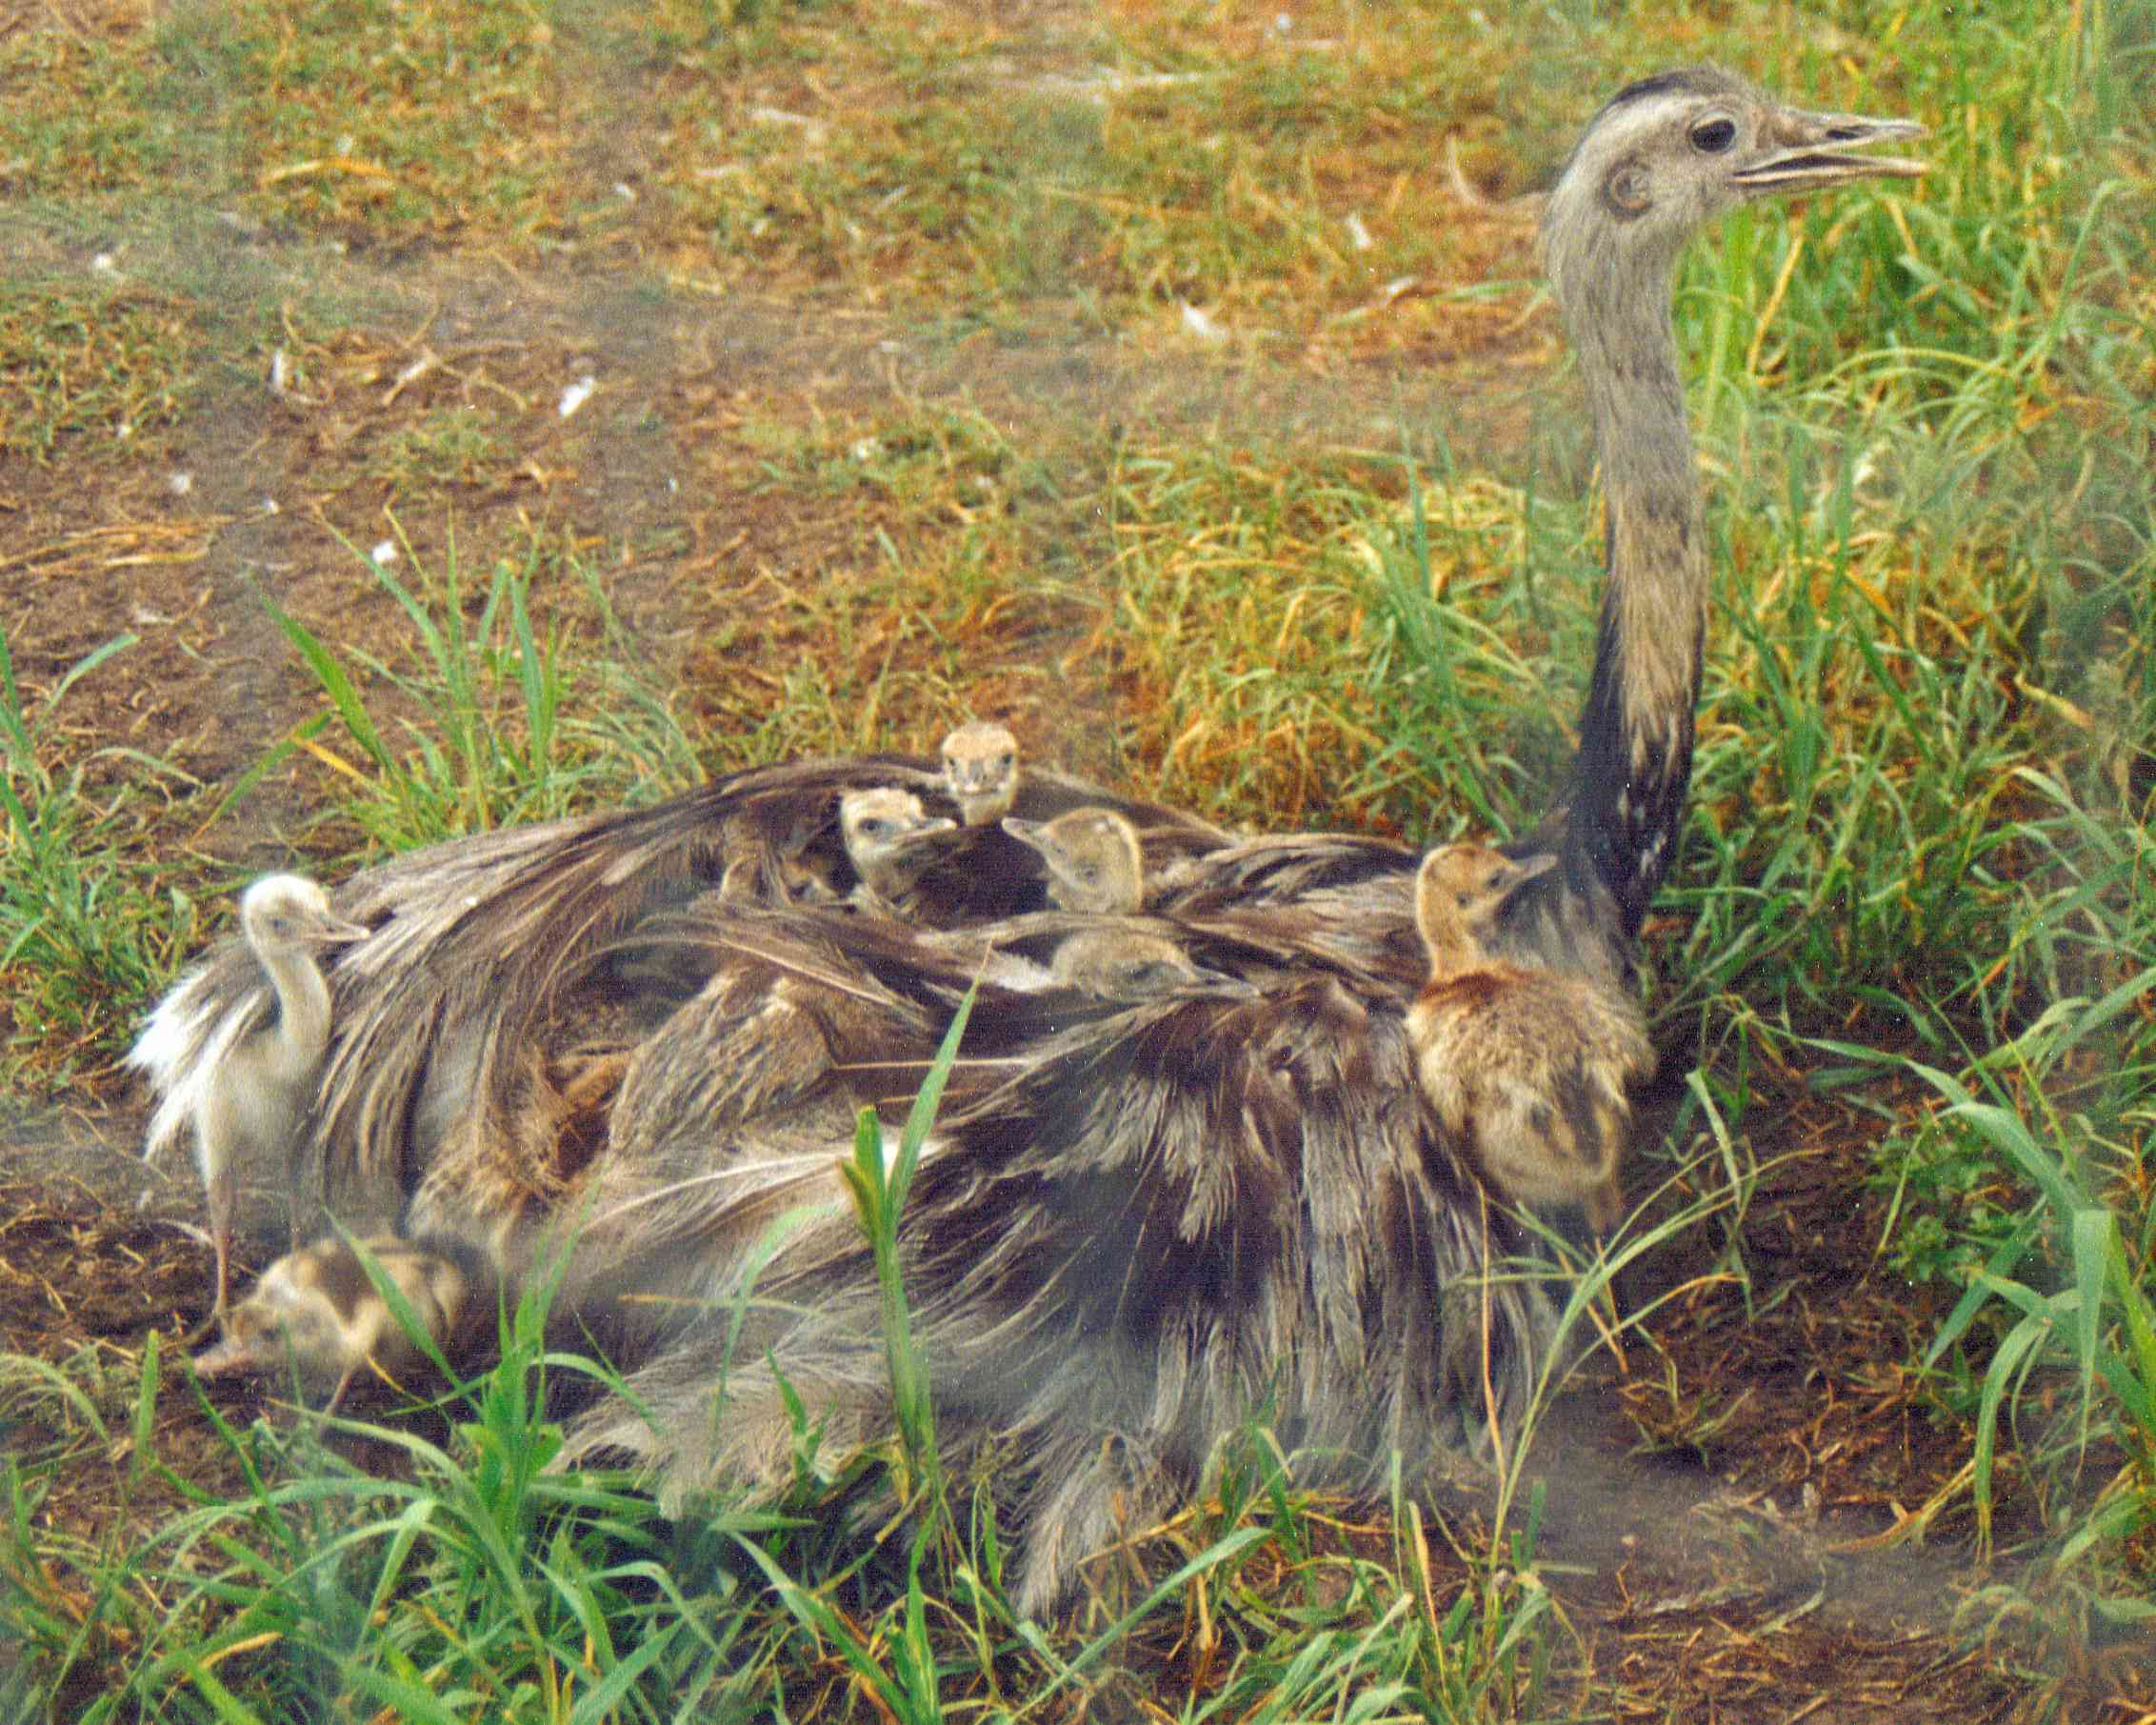 adult rhea with babies resting in its feathers